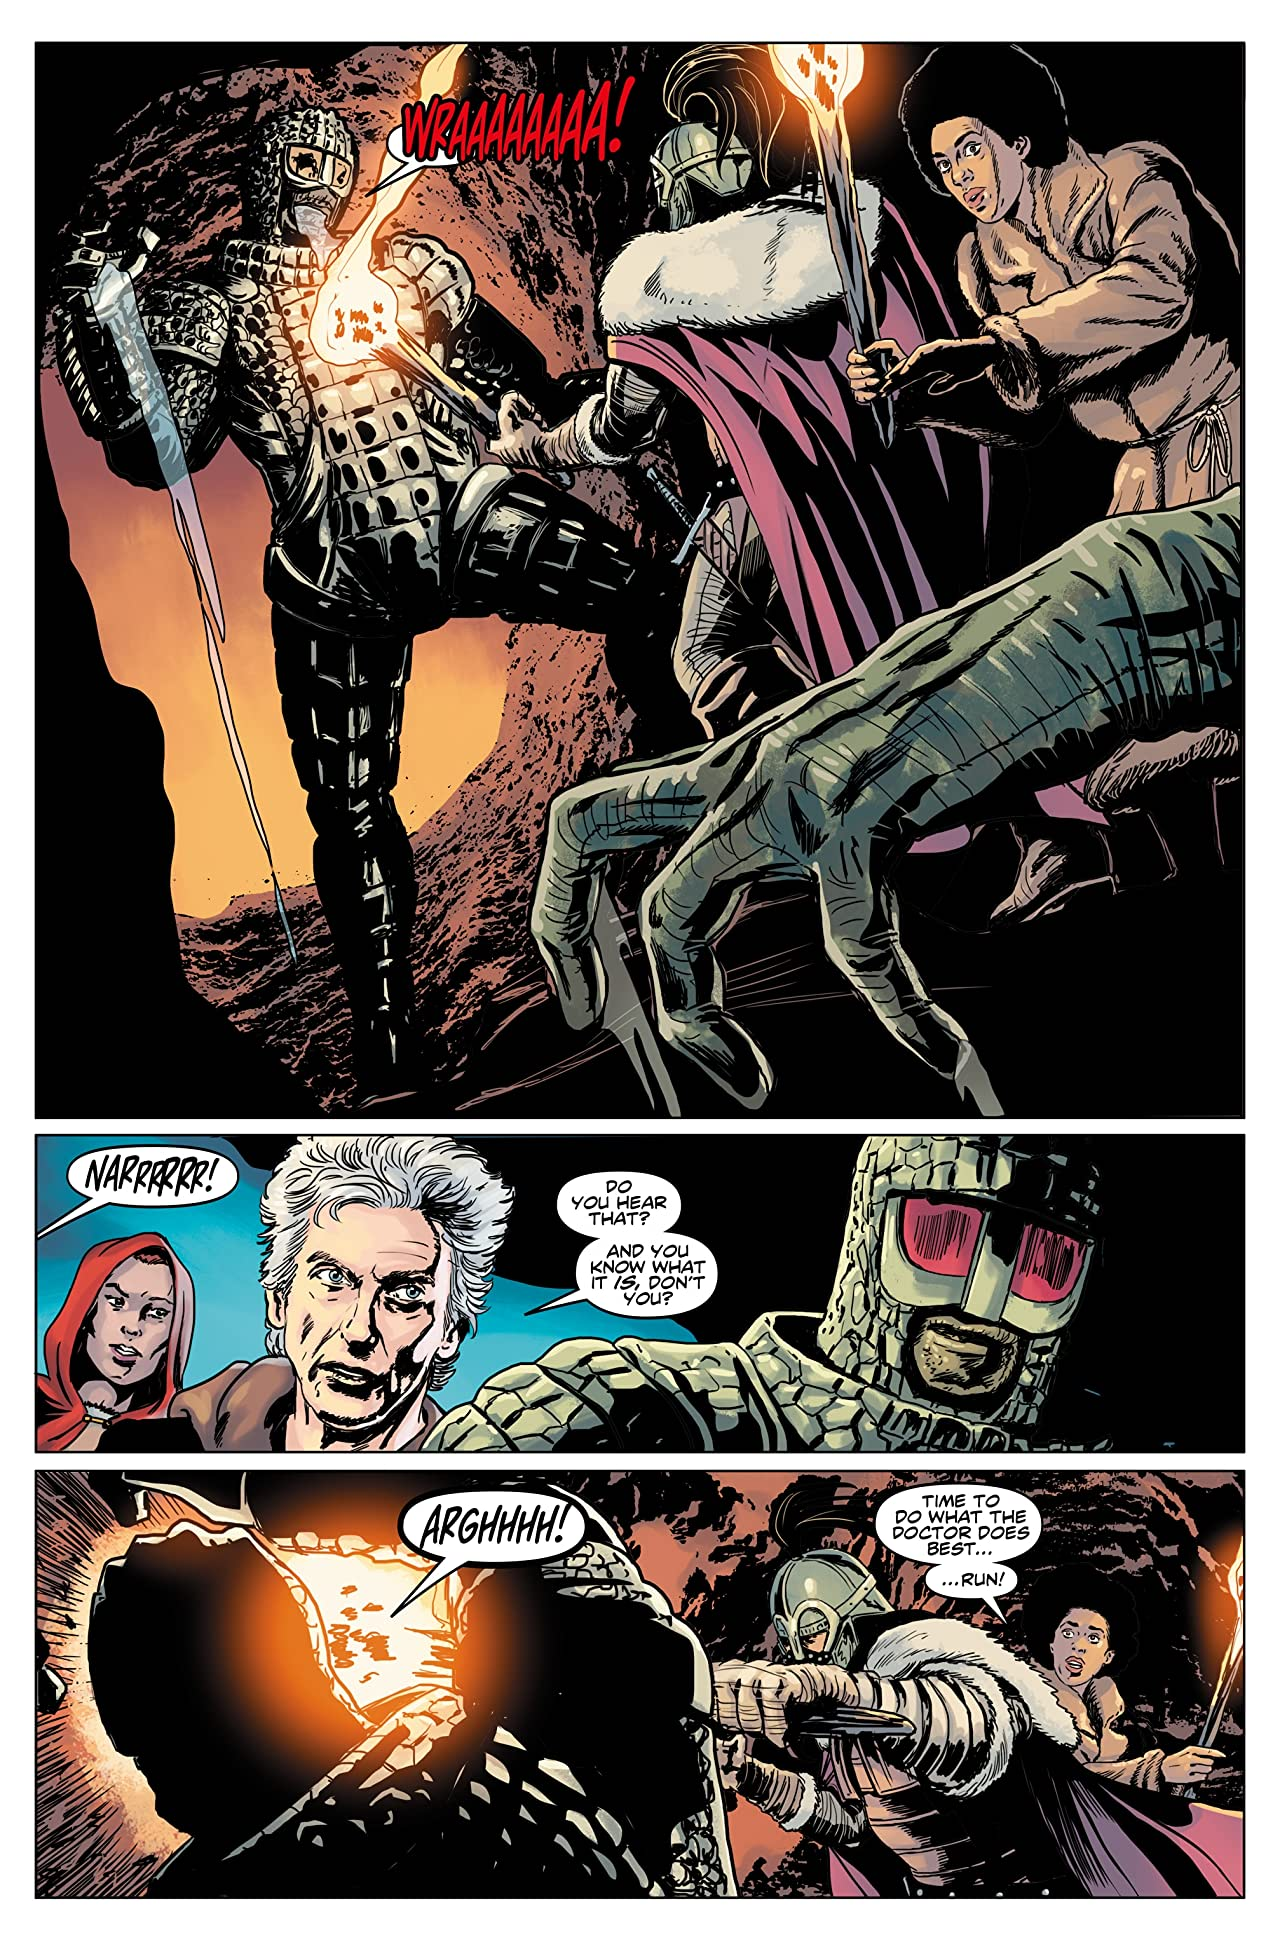 Doctor Who: The Twelfth Doctor #3.6